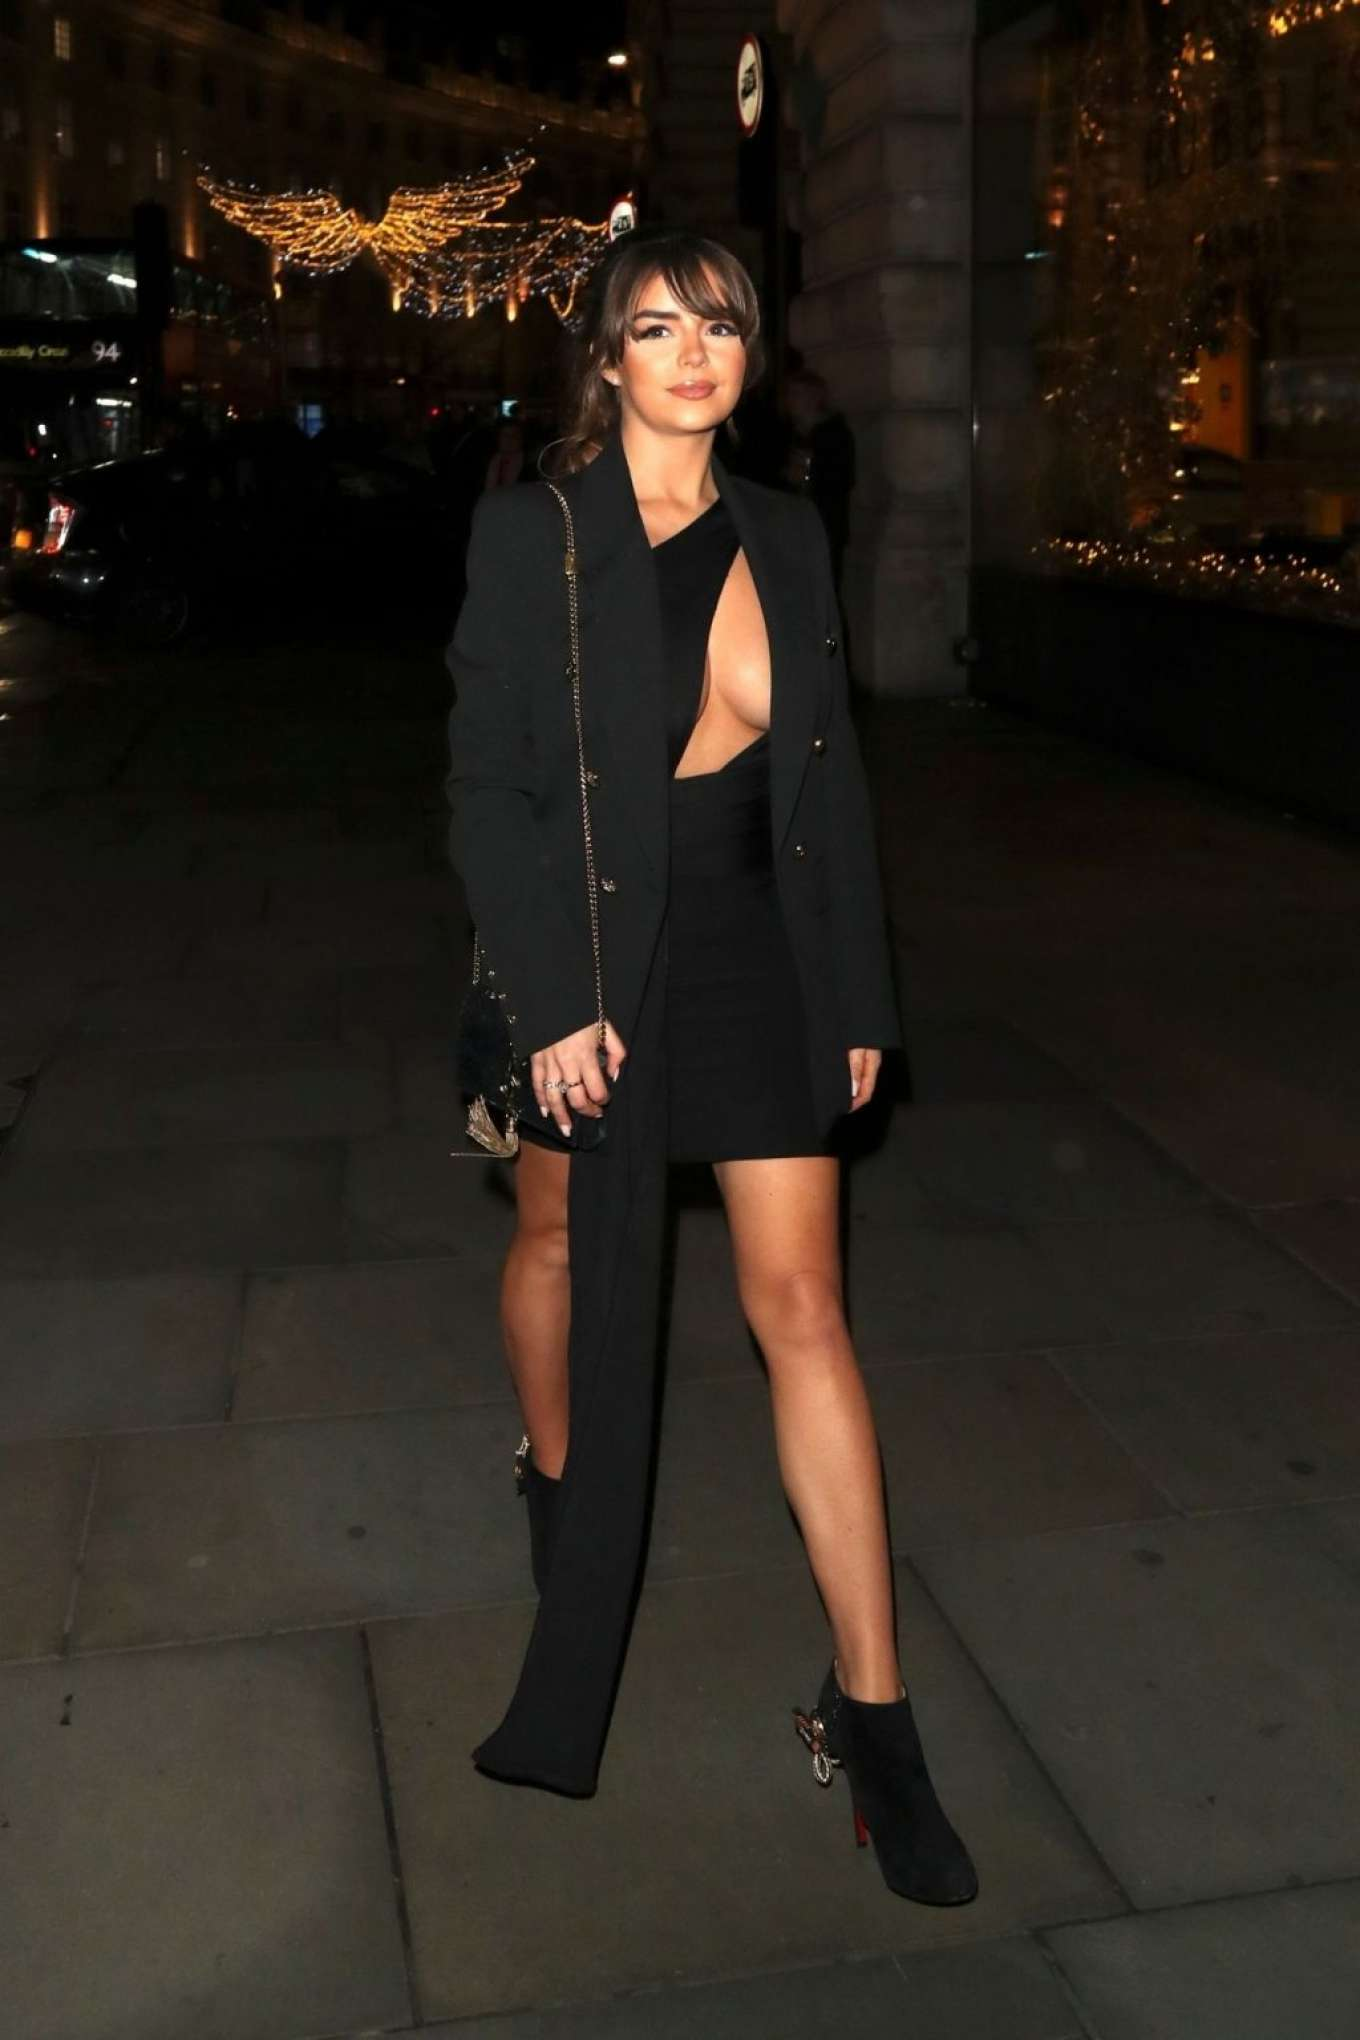 Demi Rose Mawby 2019 : Demi Rose Mawby was pictured while arriving at Cafe Royal in London-04